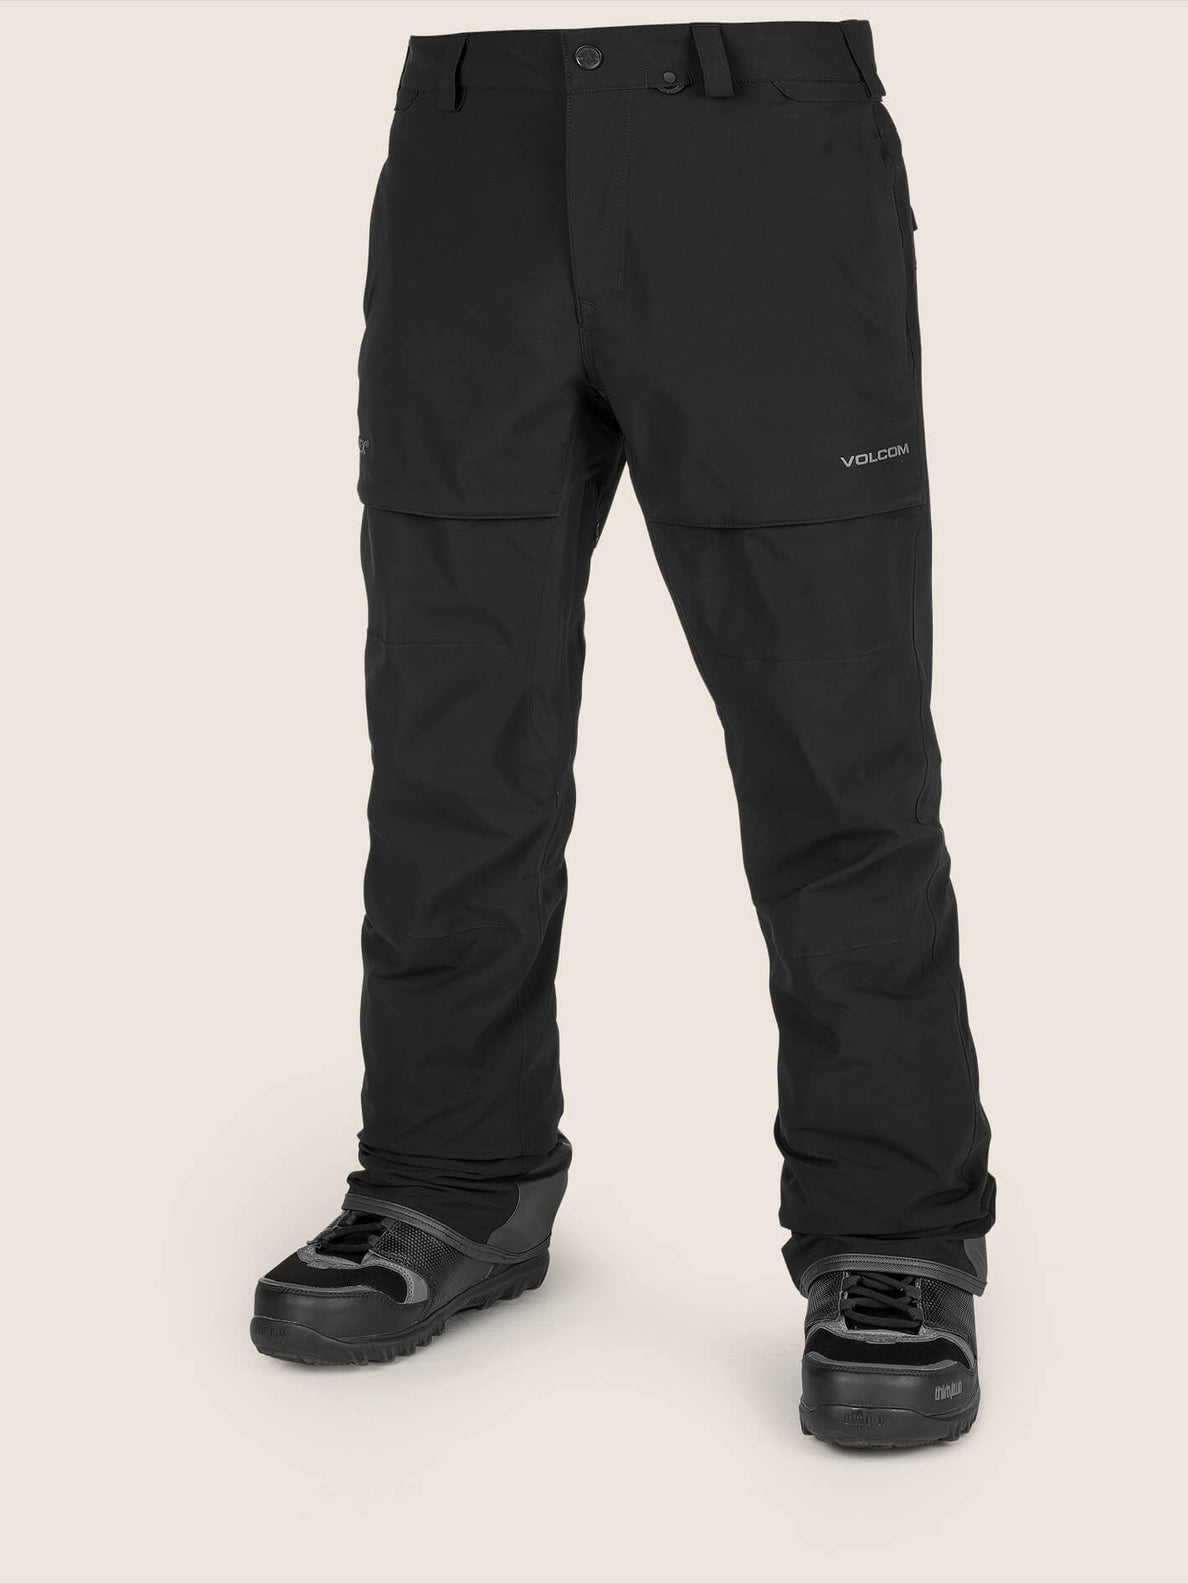 Stretch Gore-tex Pant In Black, Front View